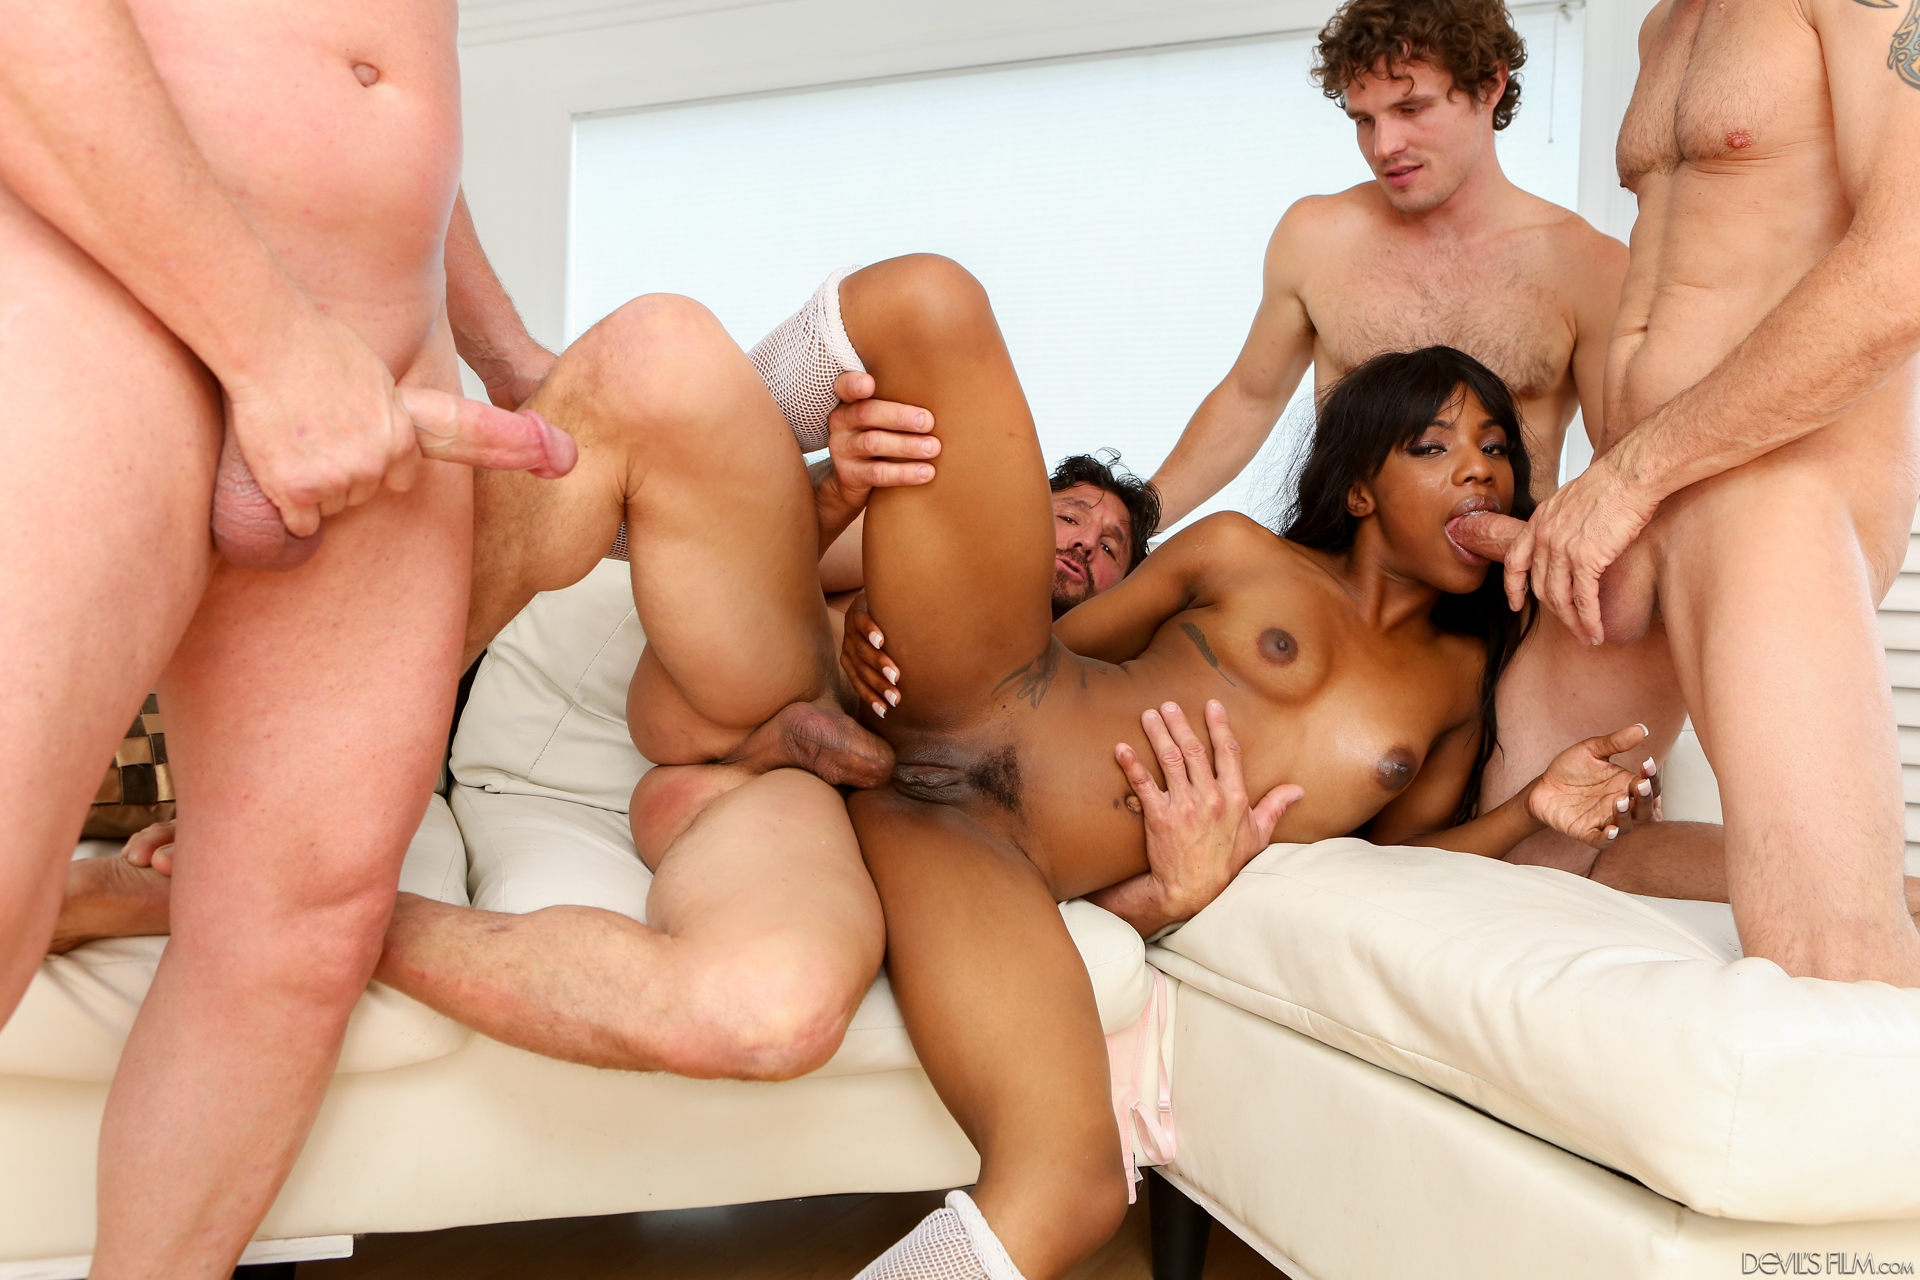 Sexy Black Woman Fucked By 4 White Guys  Most Sexy Porn-3048